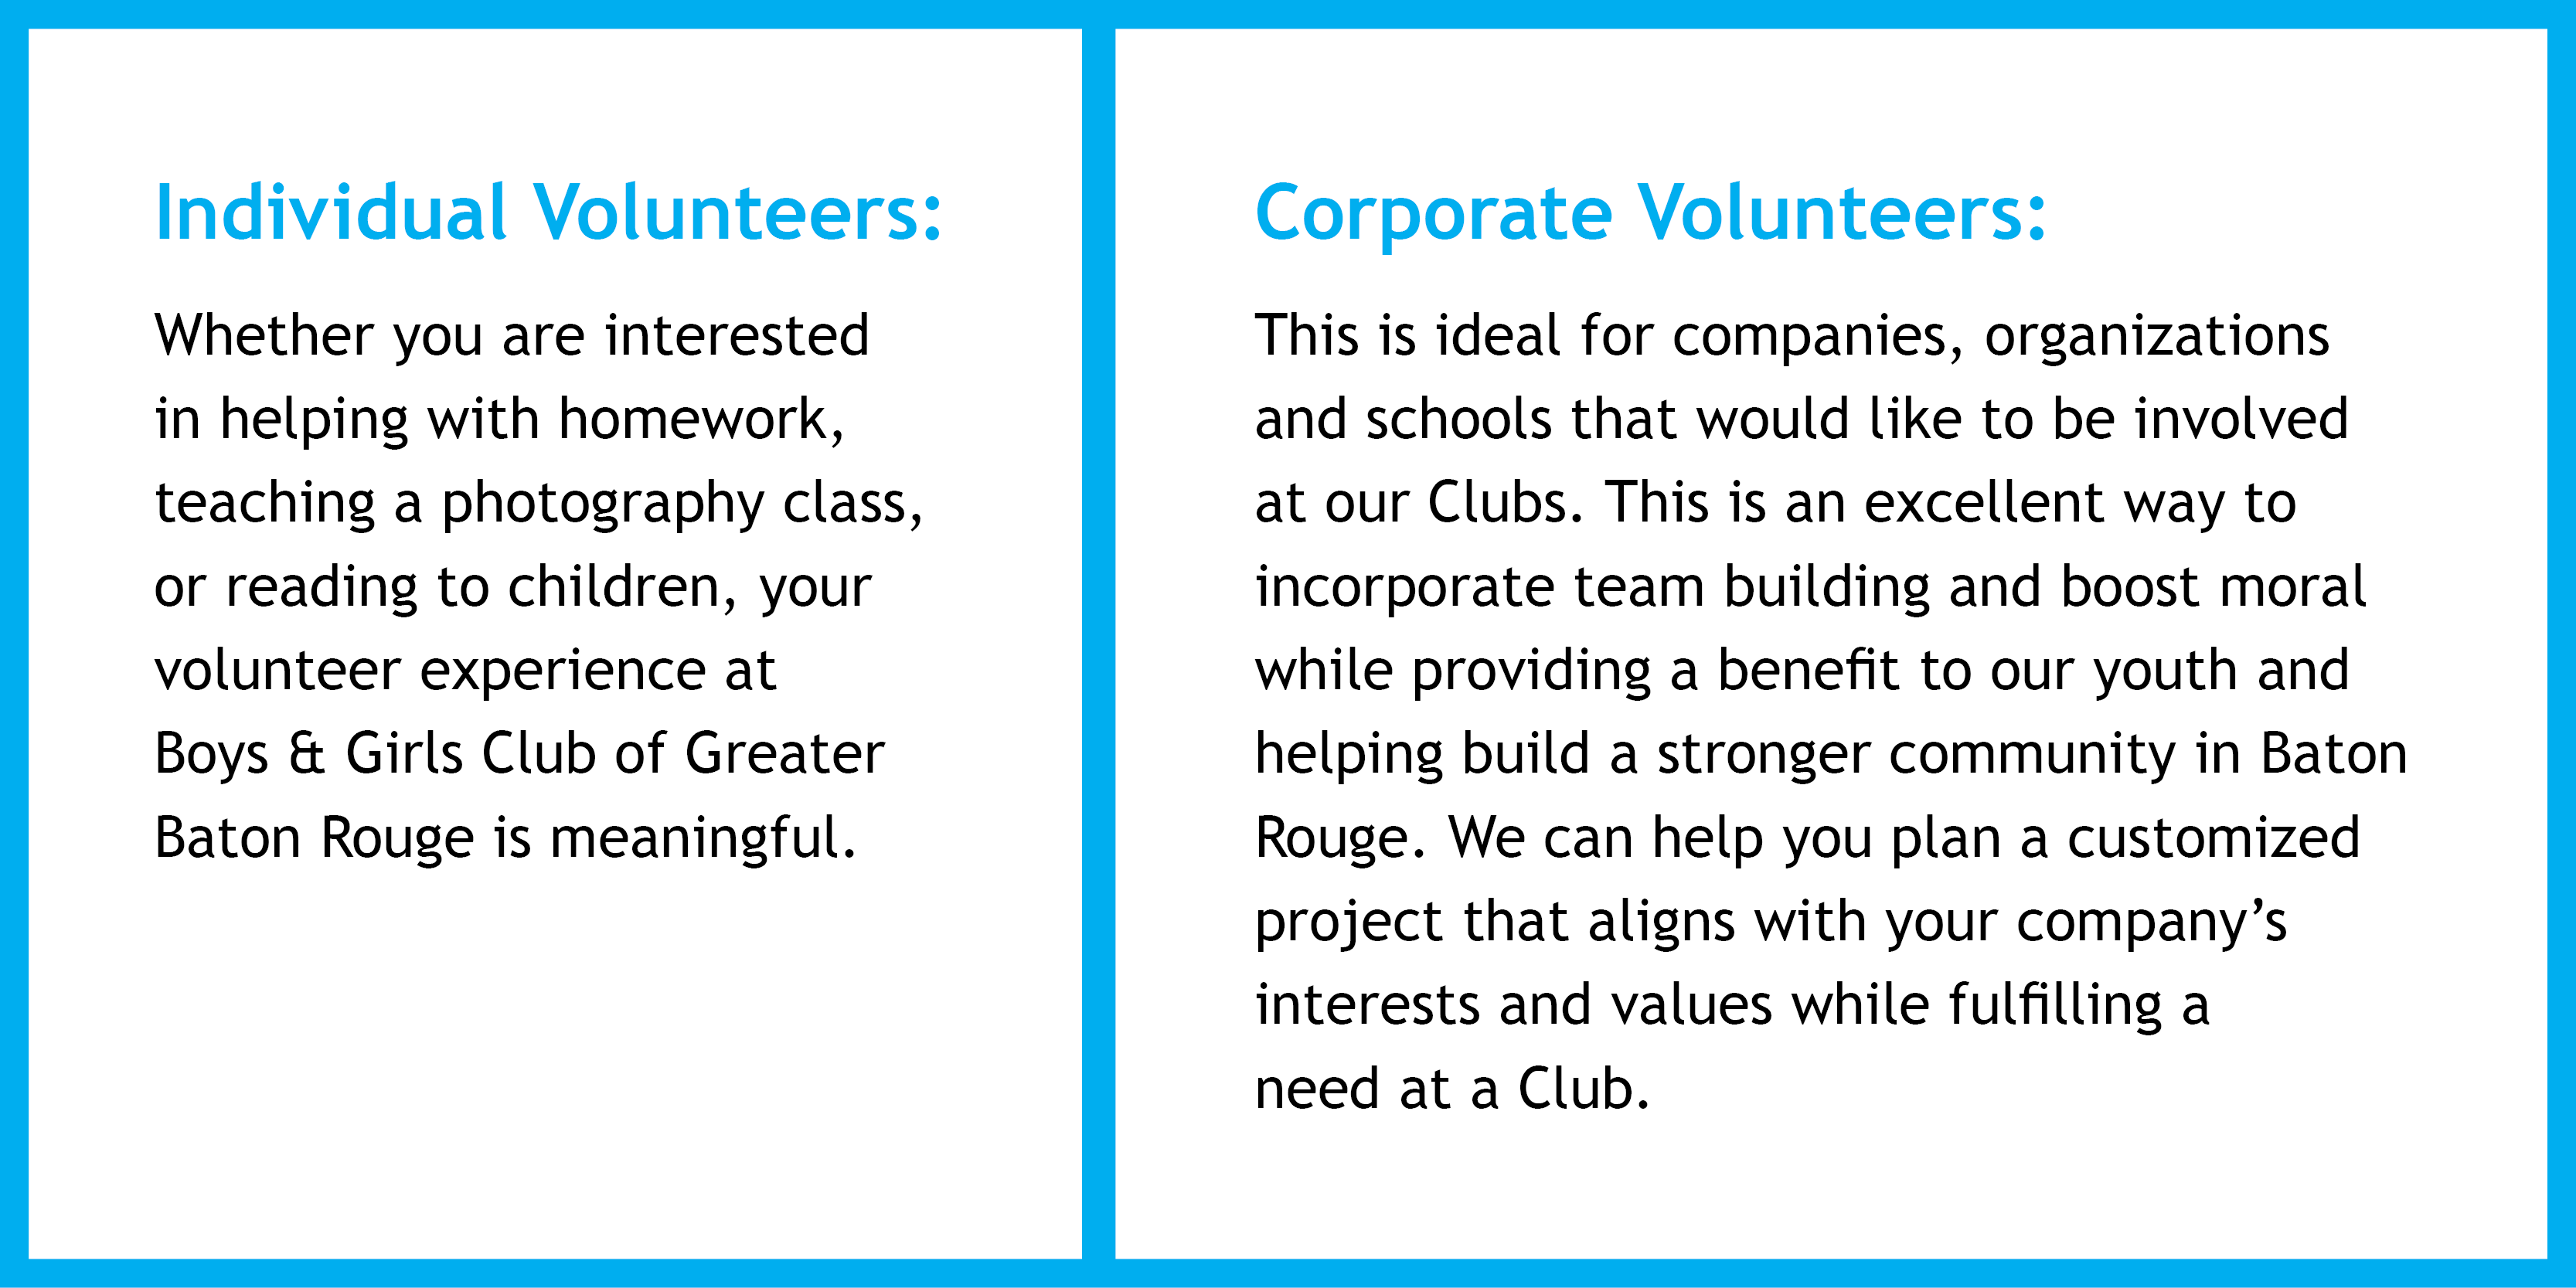 Boys & Girls Clubs of Greater Baton Rouge : How To Help